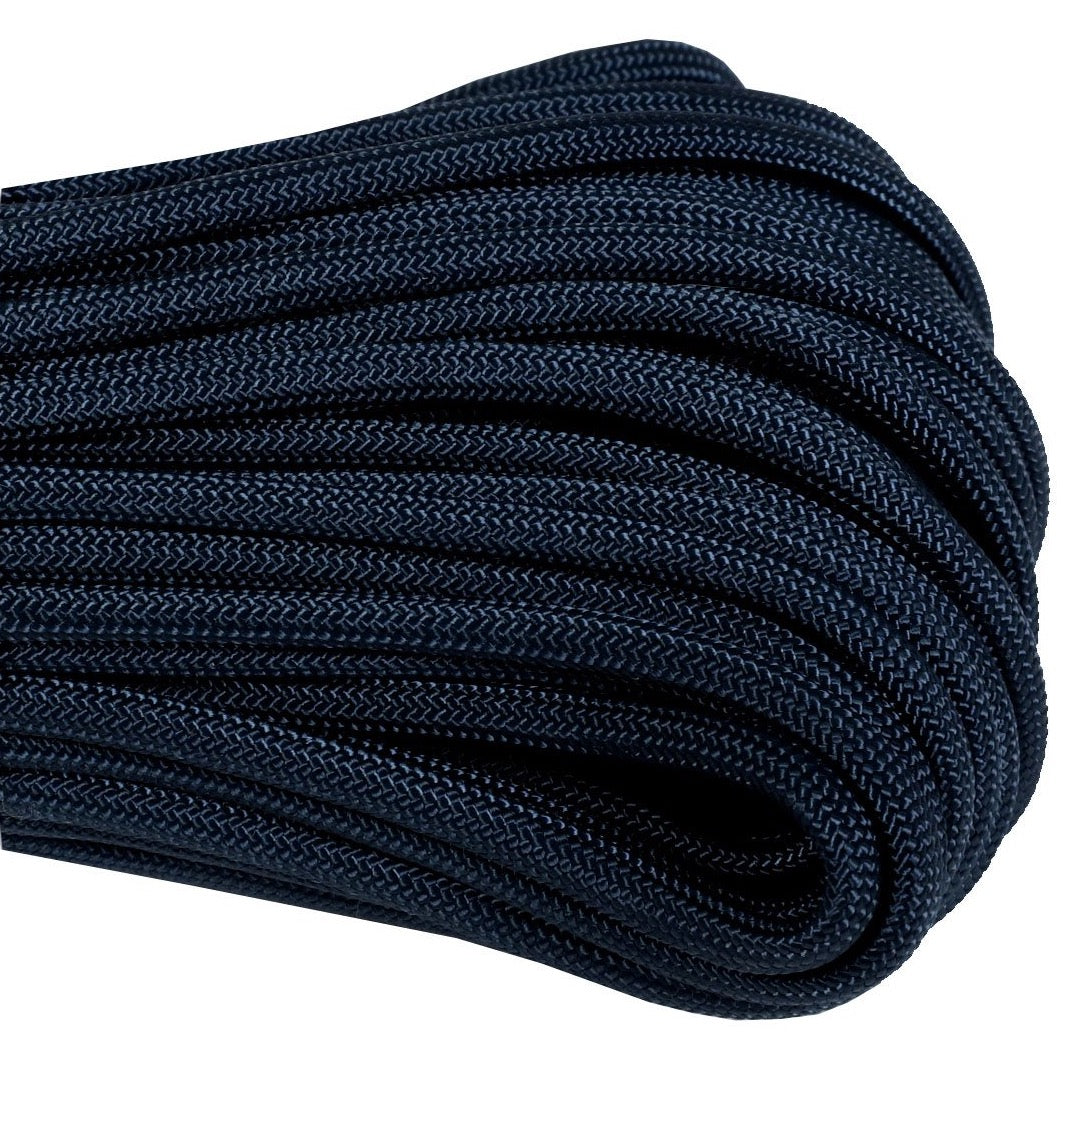 550 Type III Paracord Made in USA - 100 ft - Navy